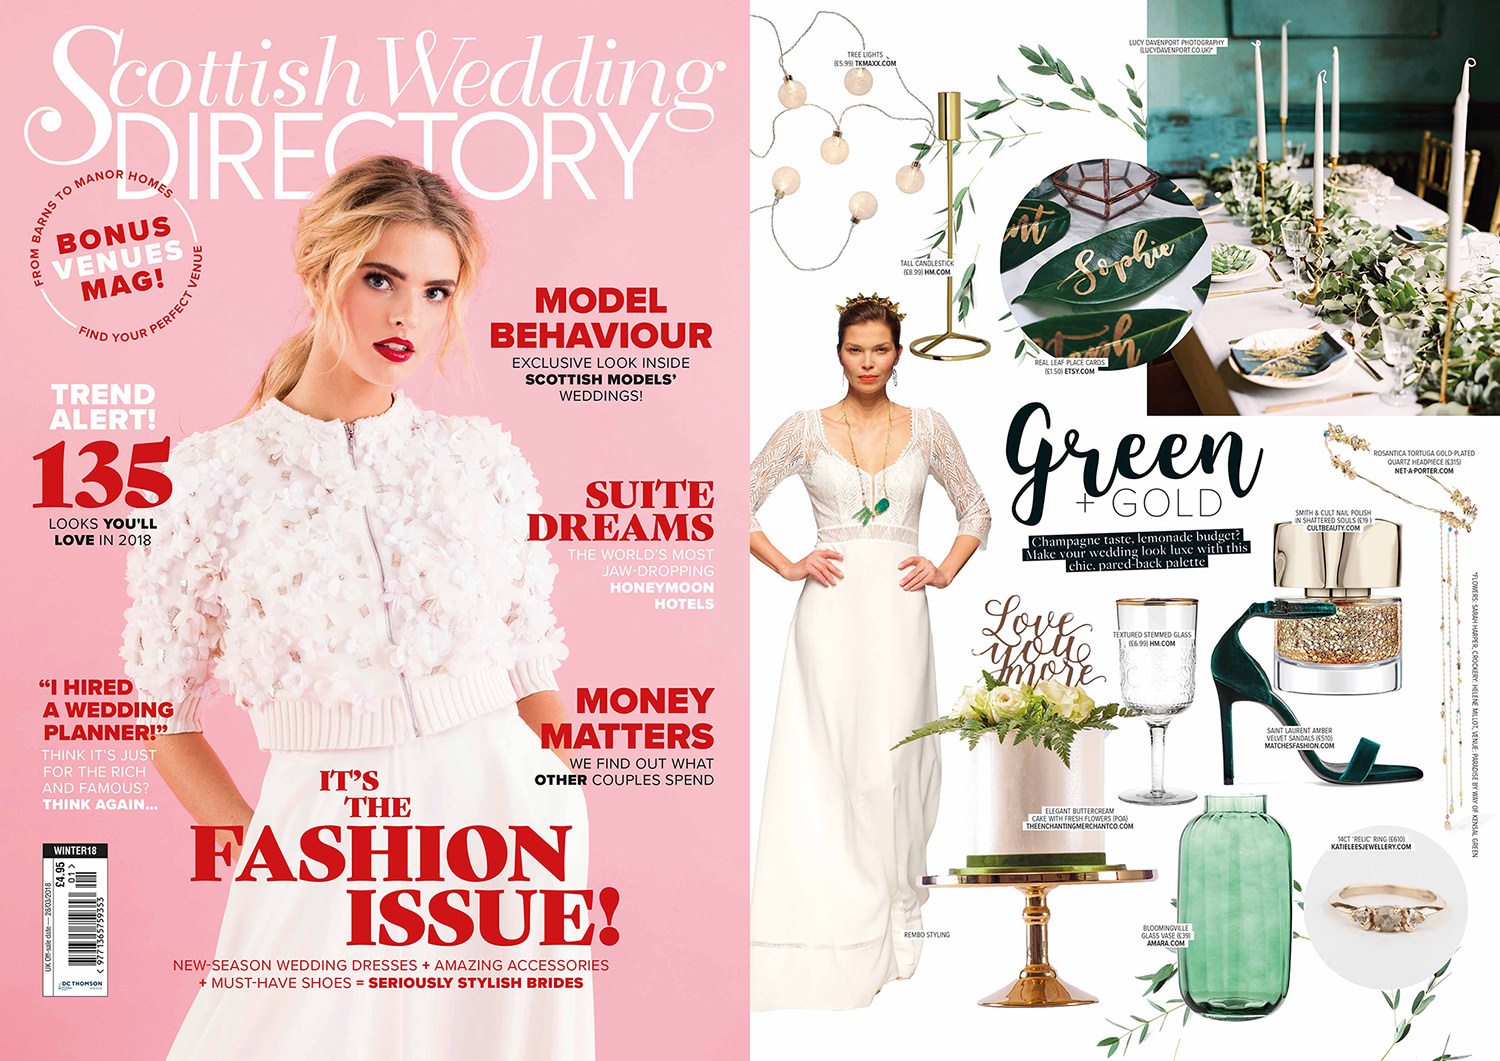 Scottish wedding directory, inspirational magazine, Something blue